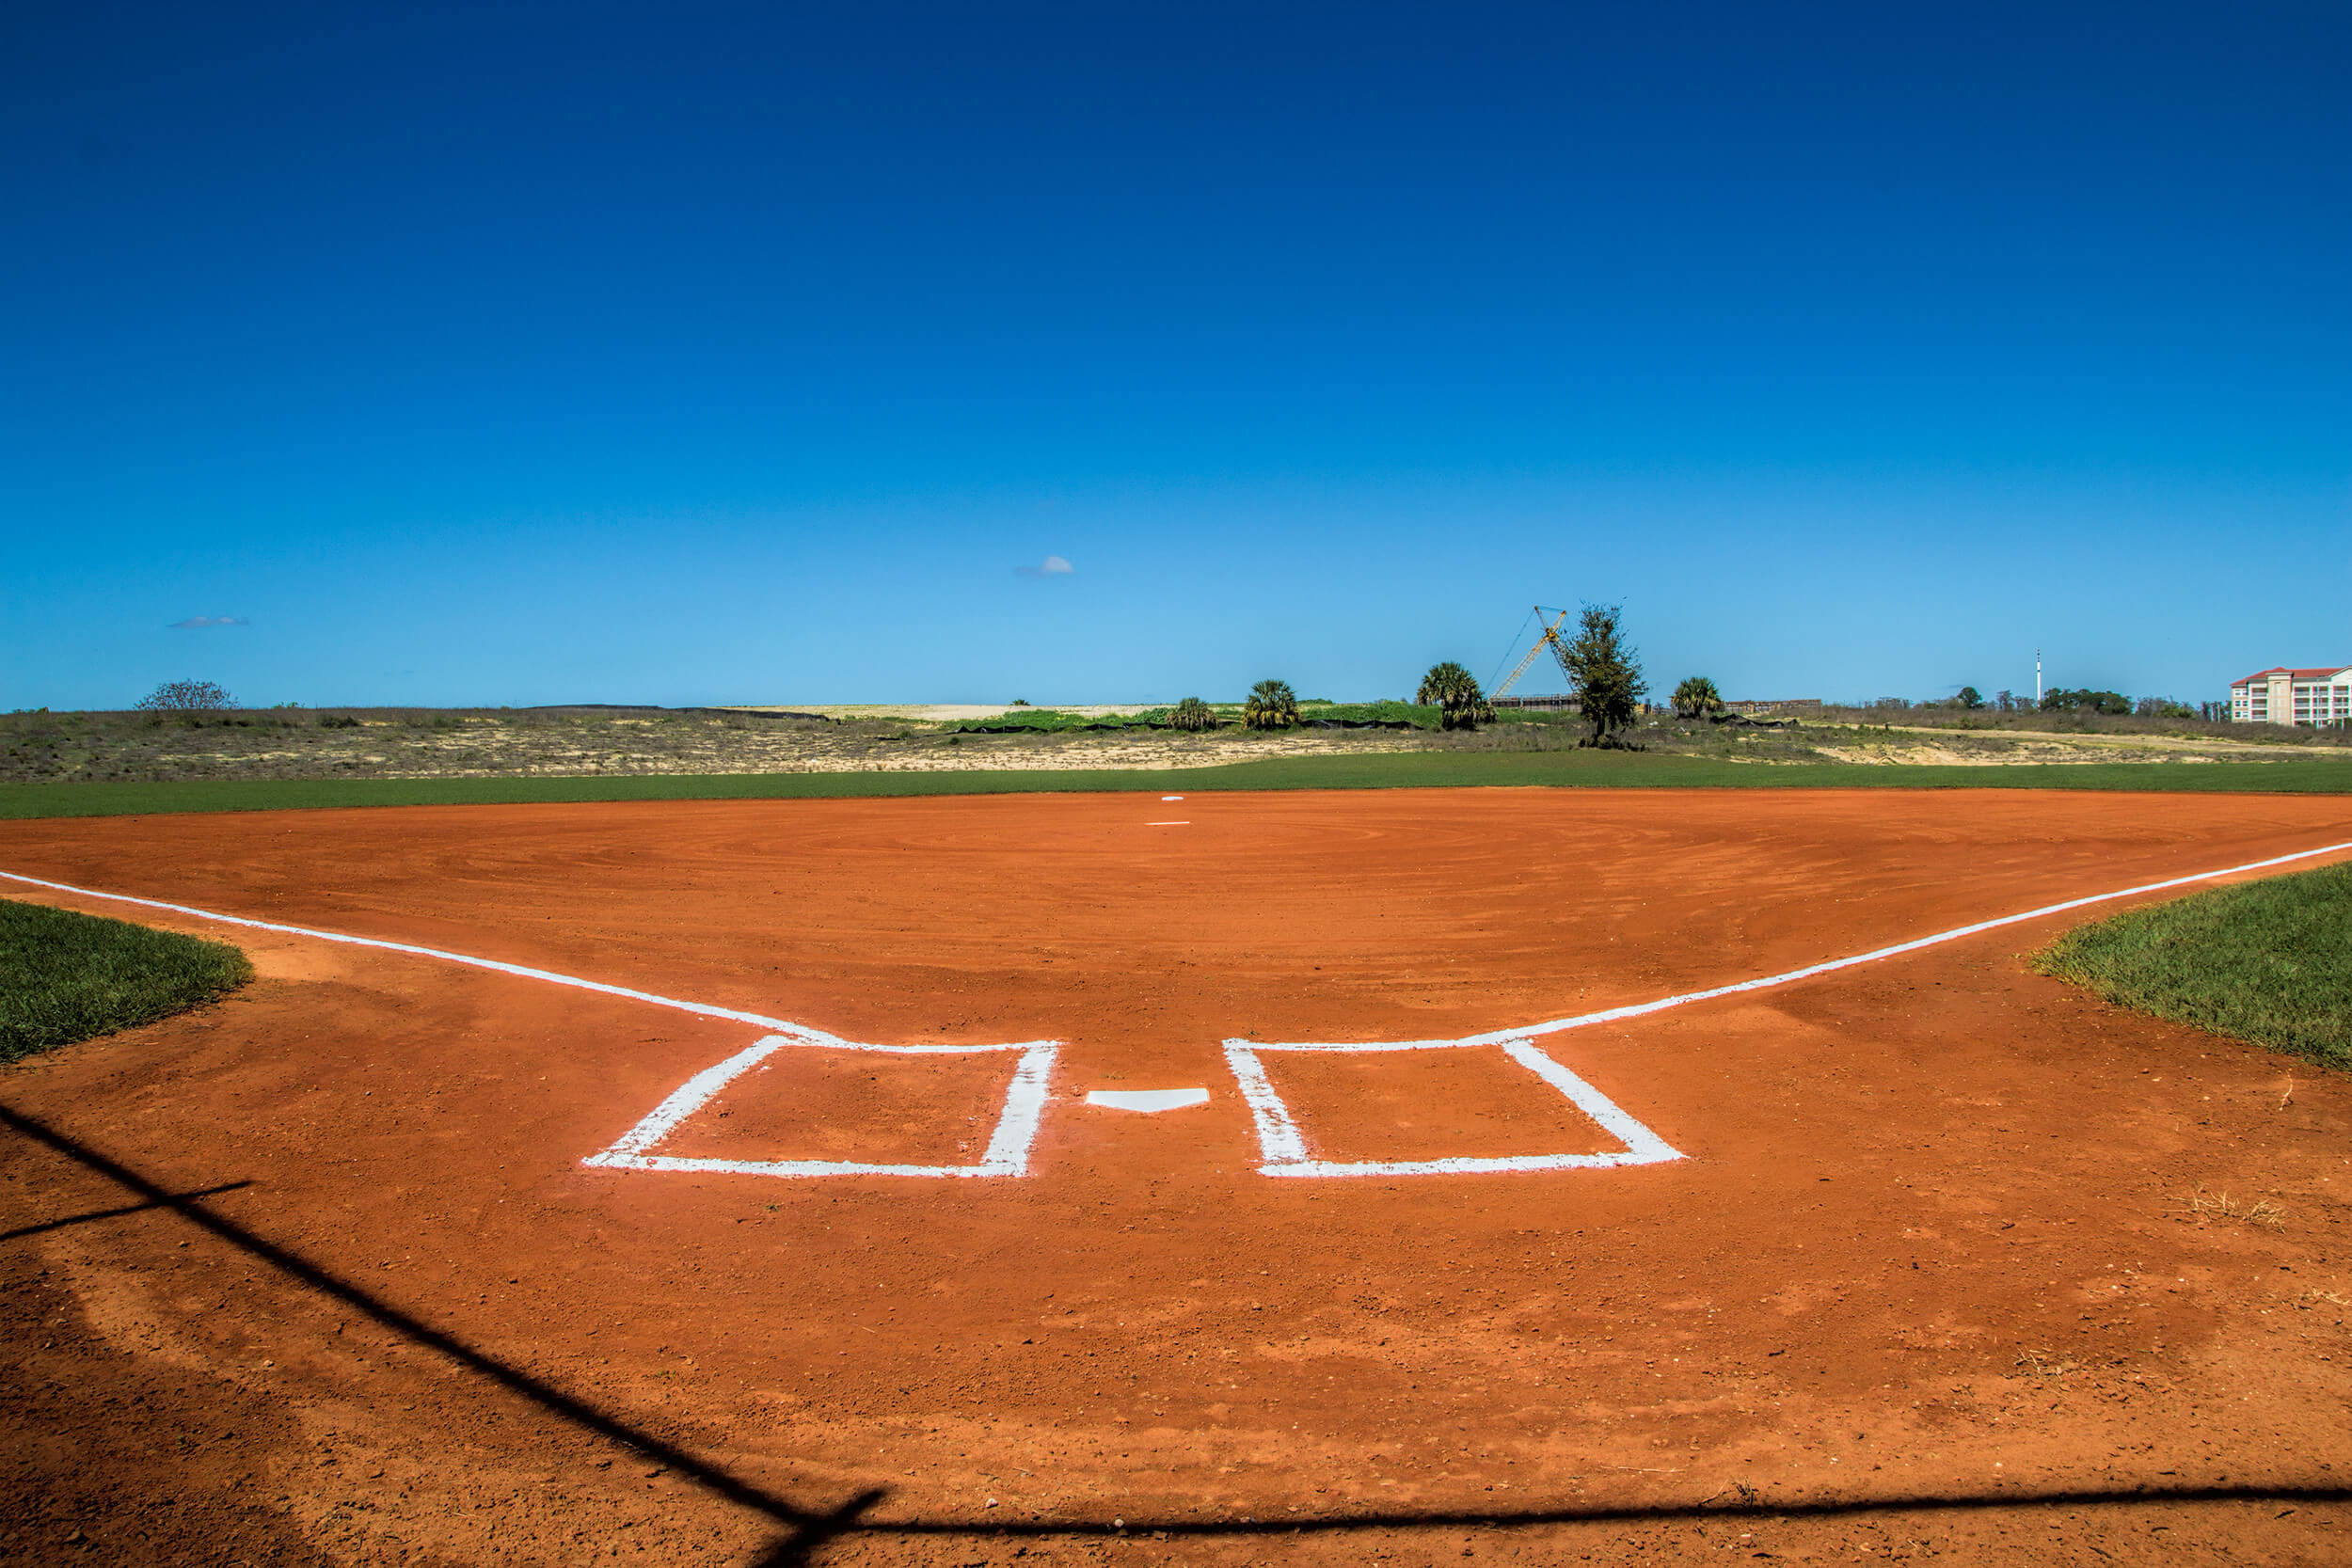 Softball events at one of our resorts in Kissimmee FL | Westgate Vacation Villas Resort & Spa | Westgate Resorts